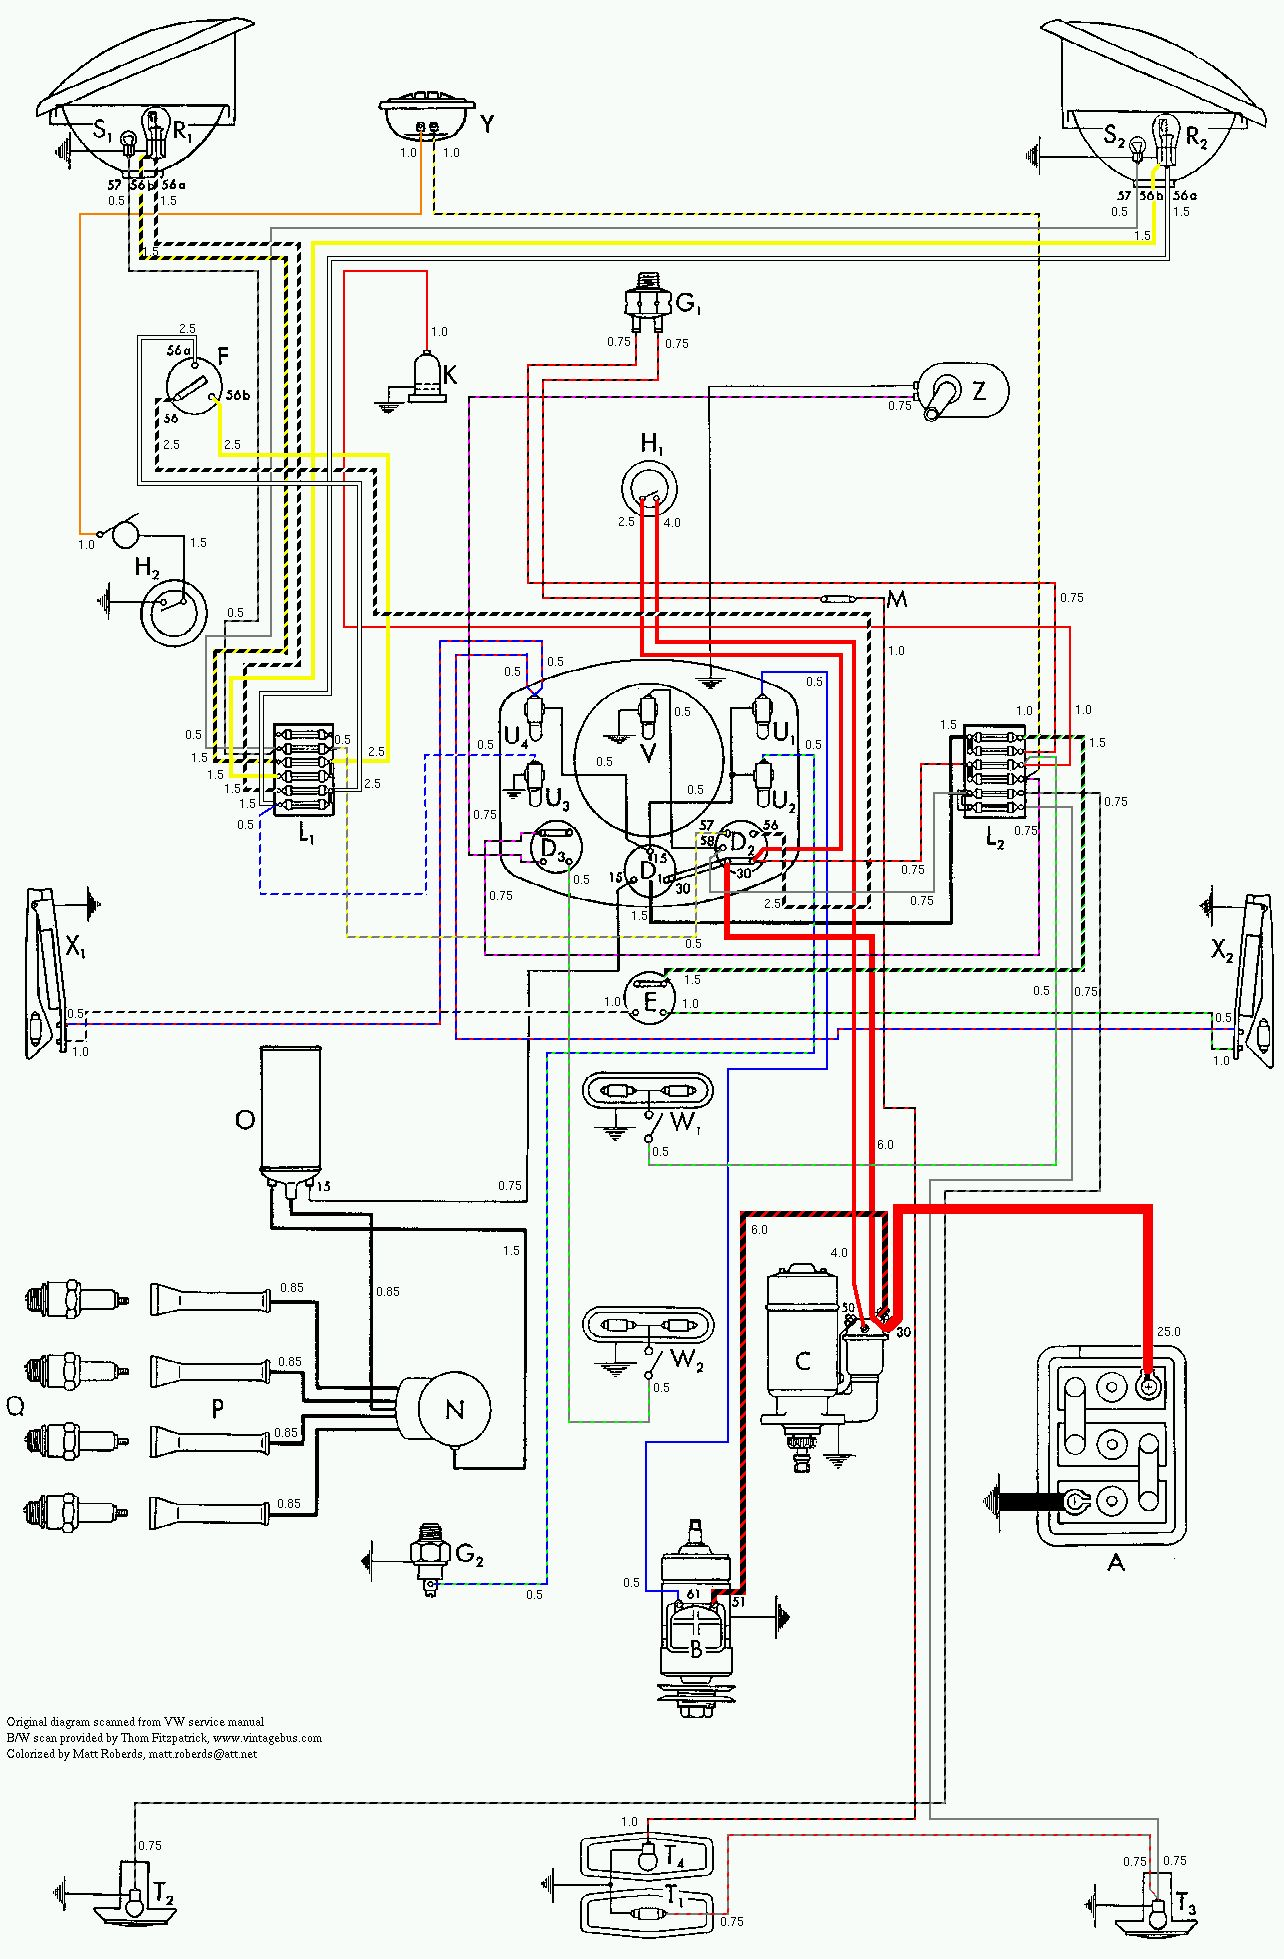 1966 corvette turn signal wiring diagram casablanca fan switch vintagebus com vw bus and other diagrams